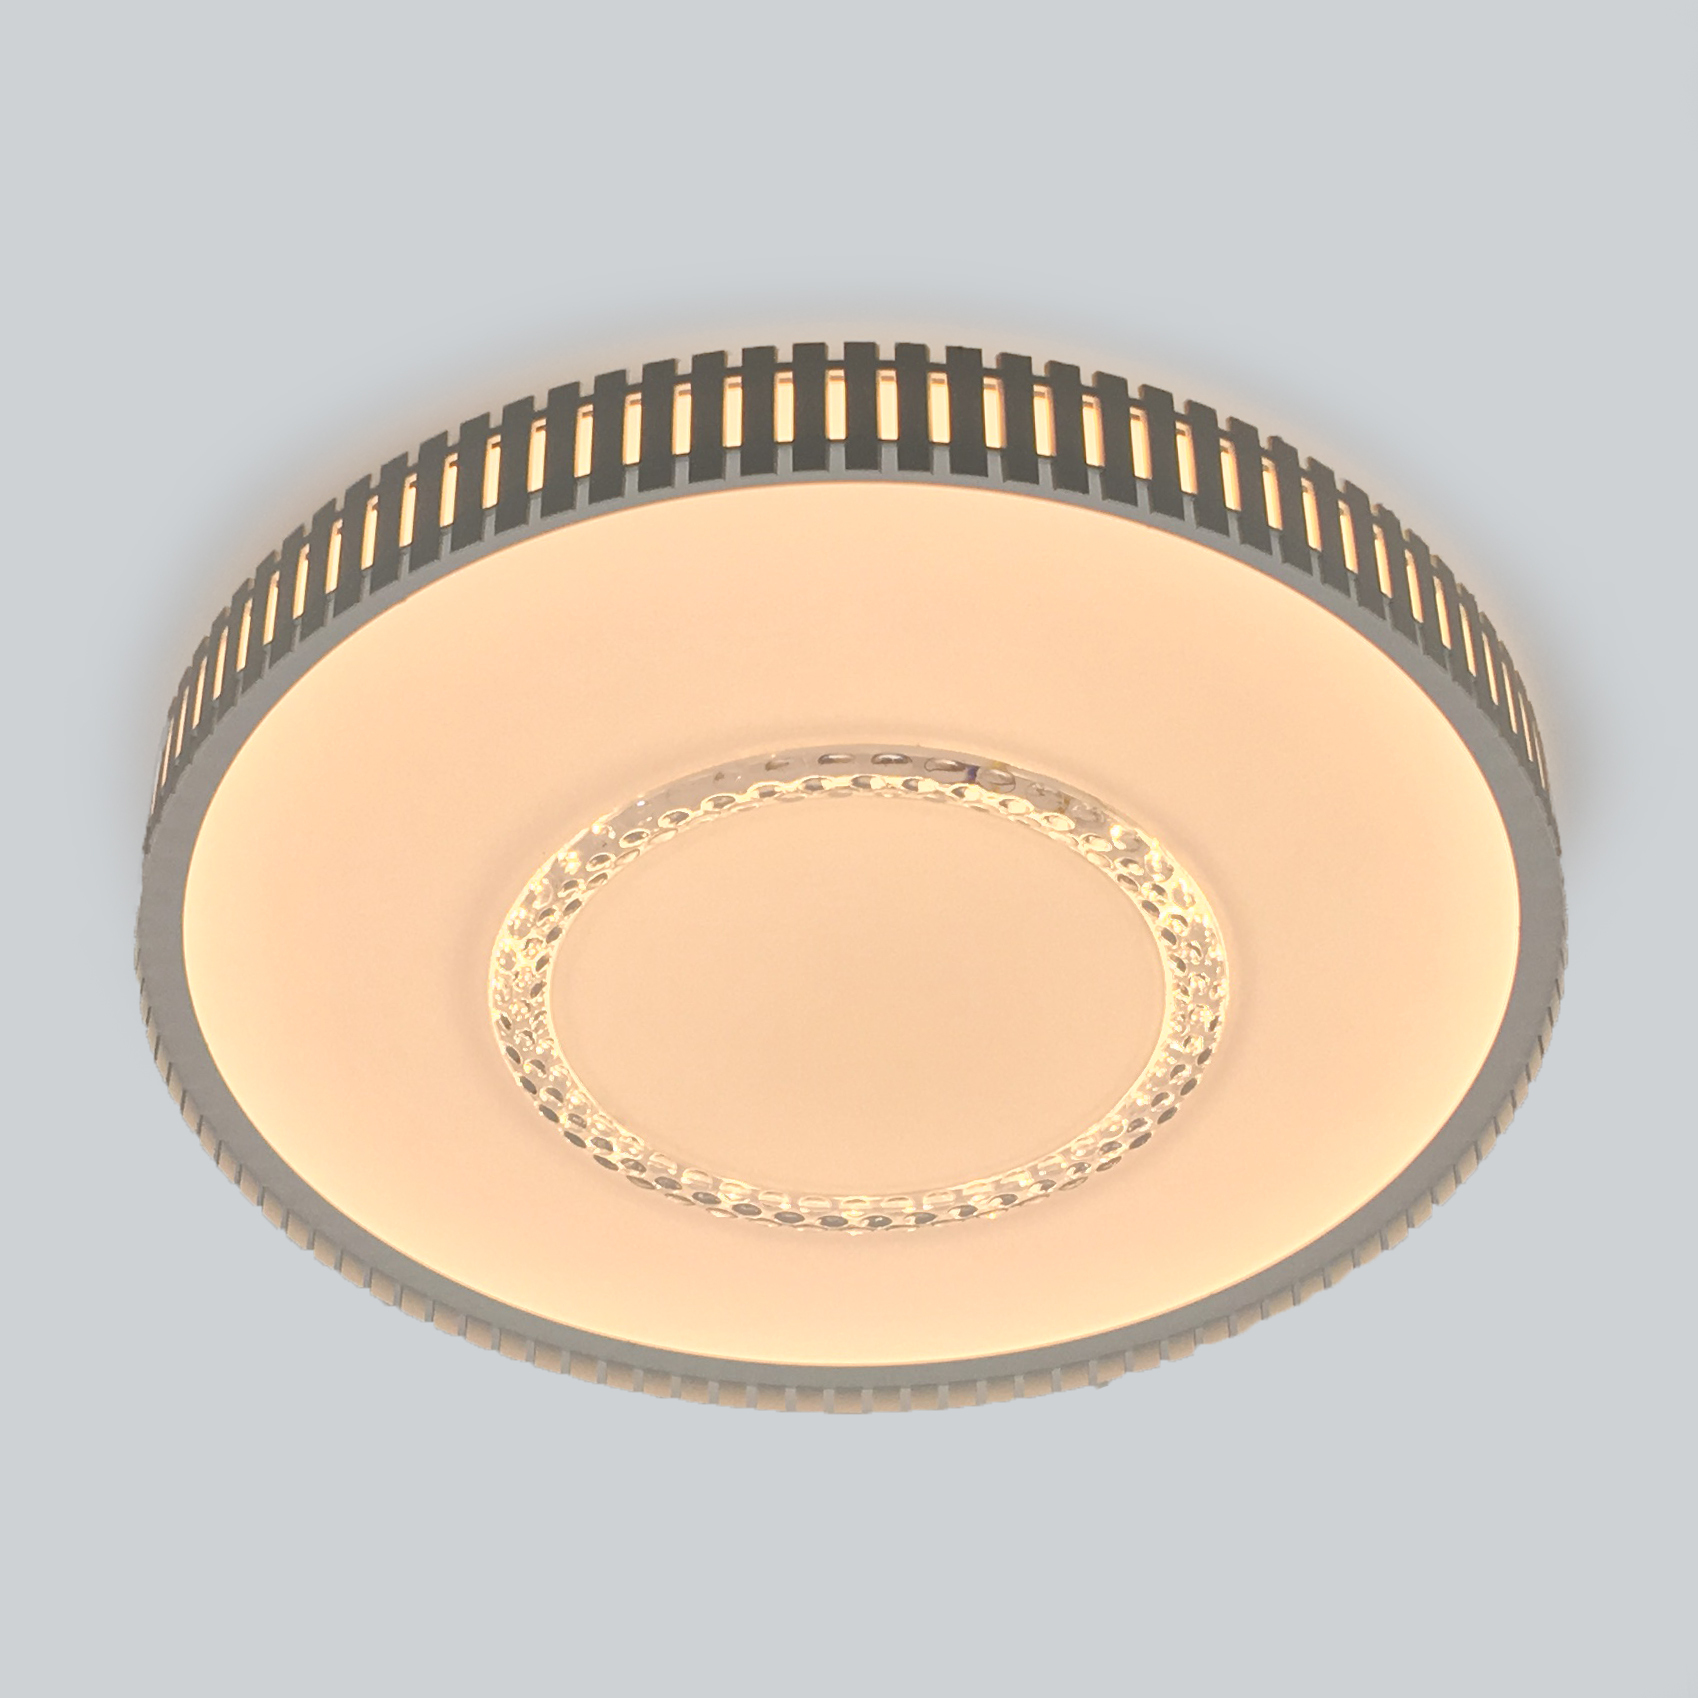 High quality round acrylic modern Led ceiling light